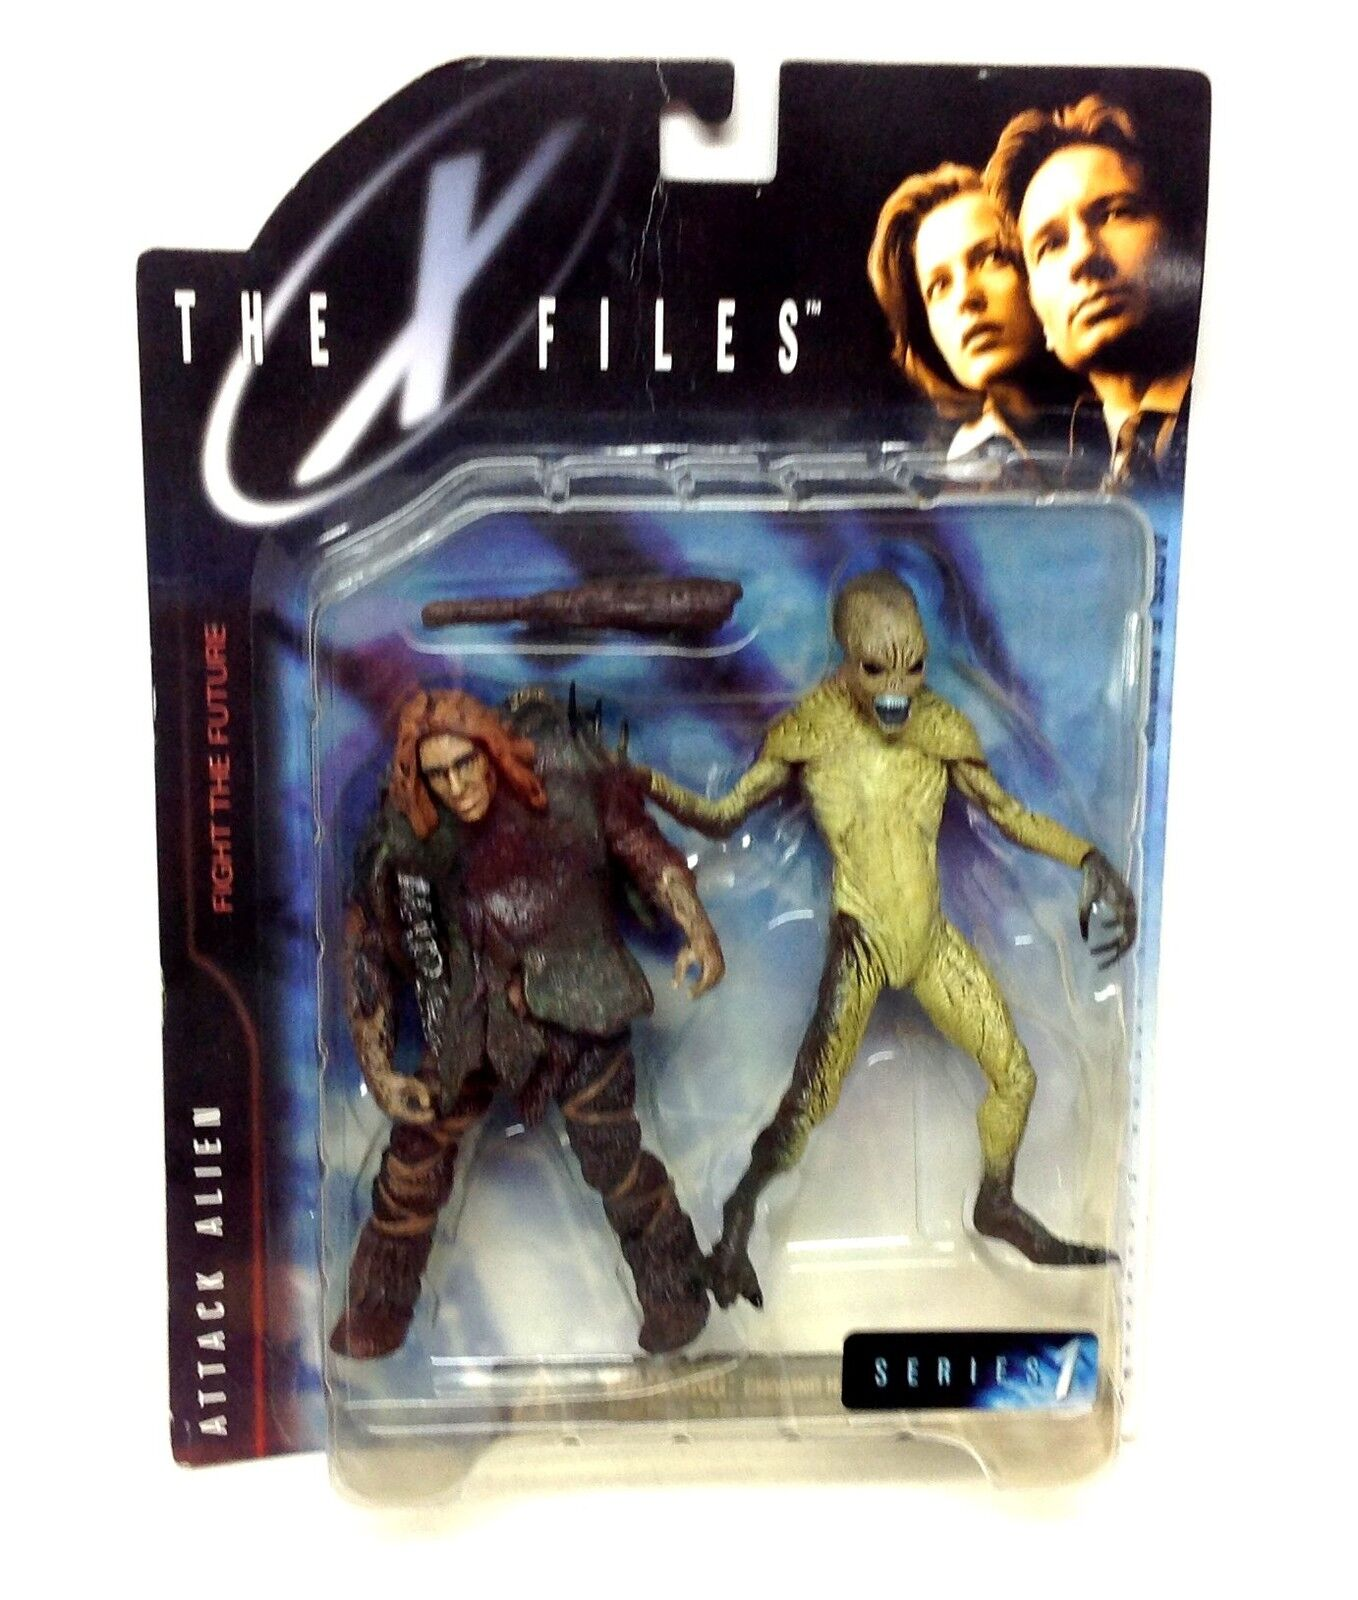 McFarlane Toys X FILES  ALIEN & CAVEMAN  tv movie figures set GREAT FIGURES